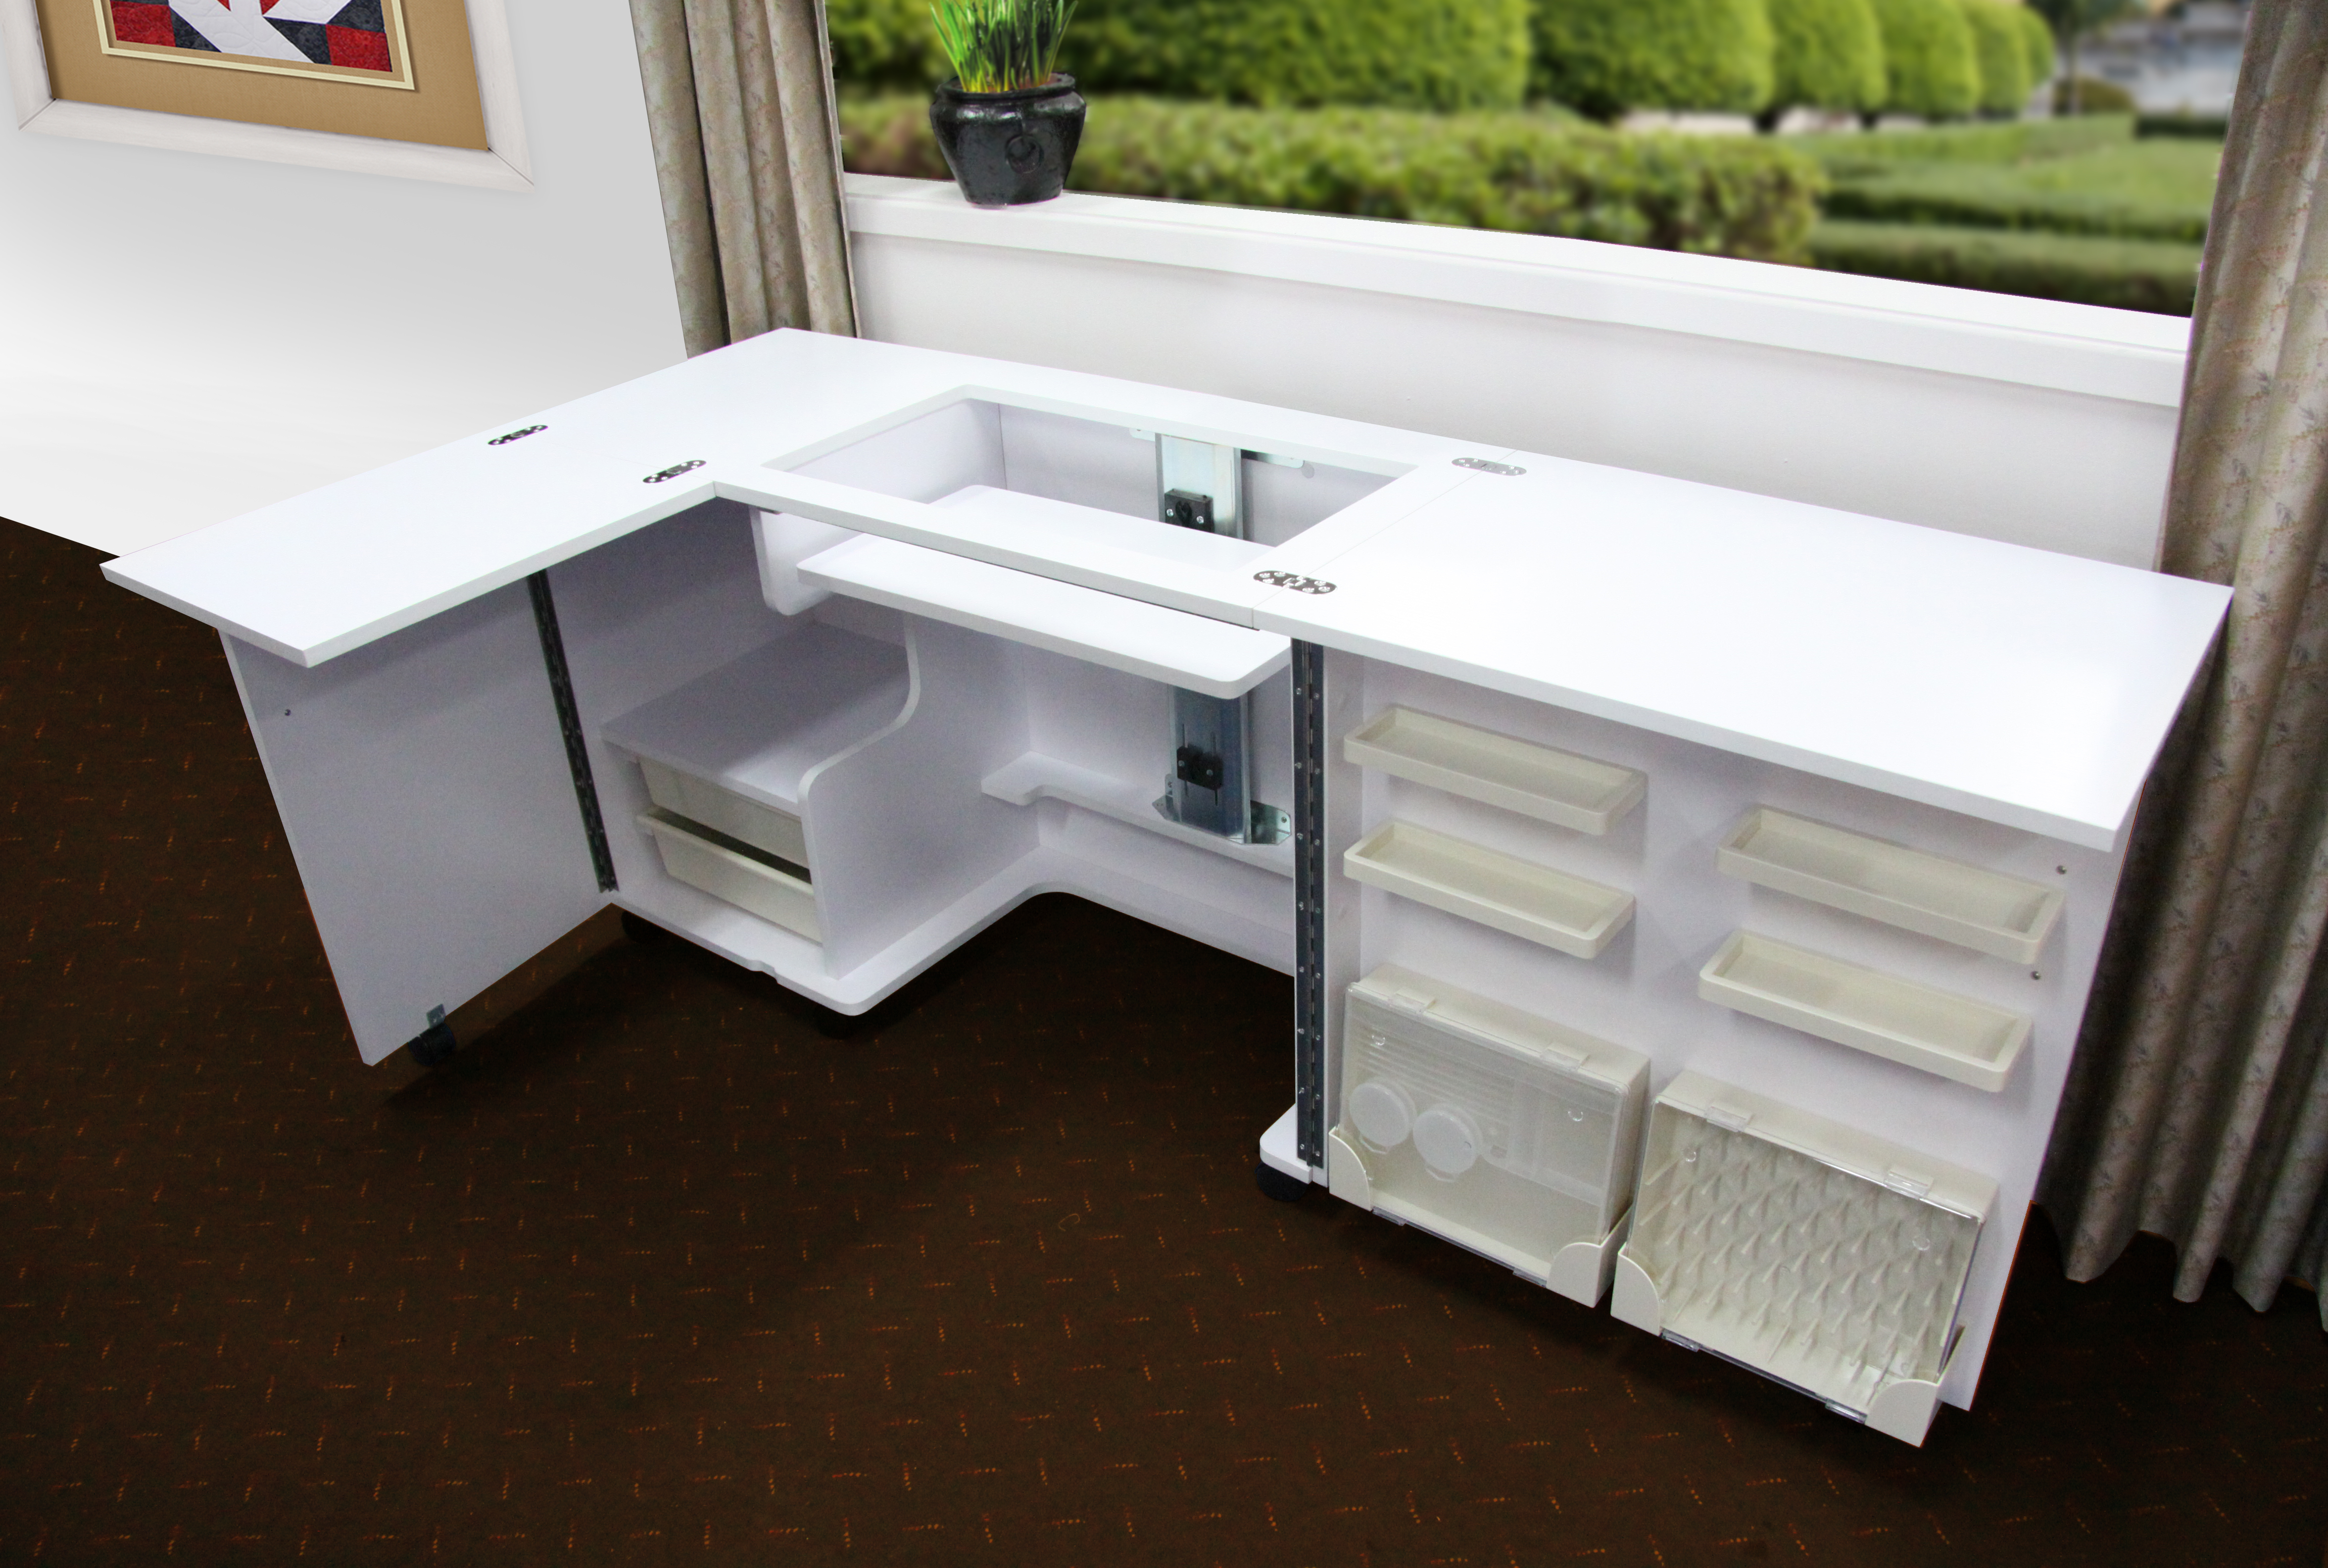 hobbysew blog » sewing cabinets